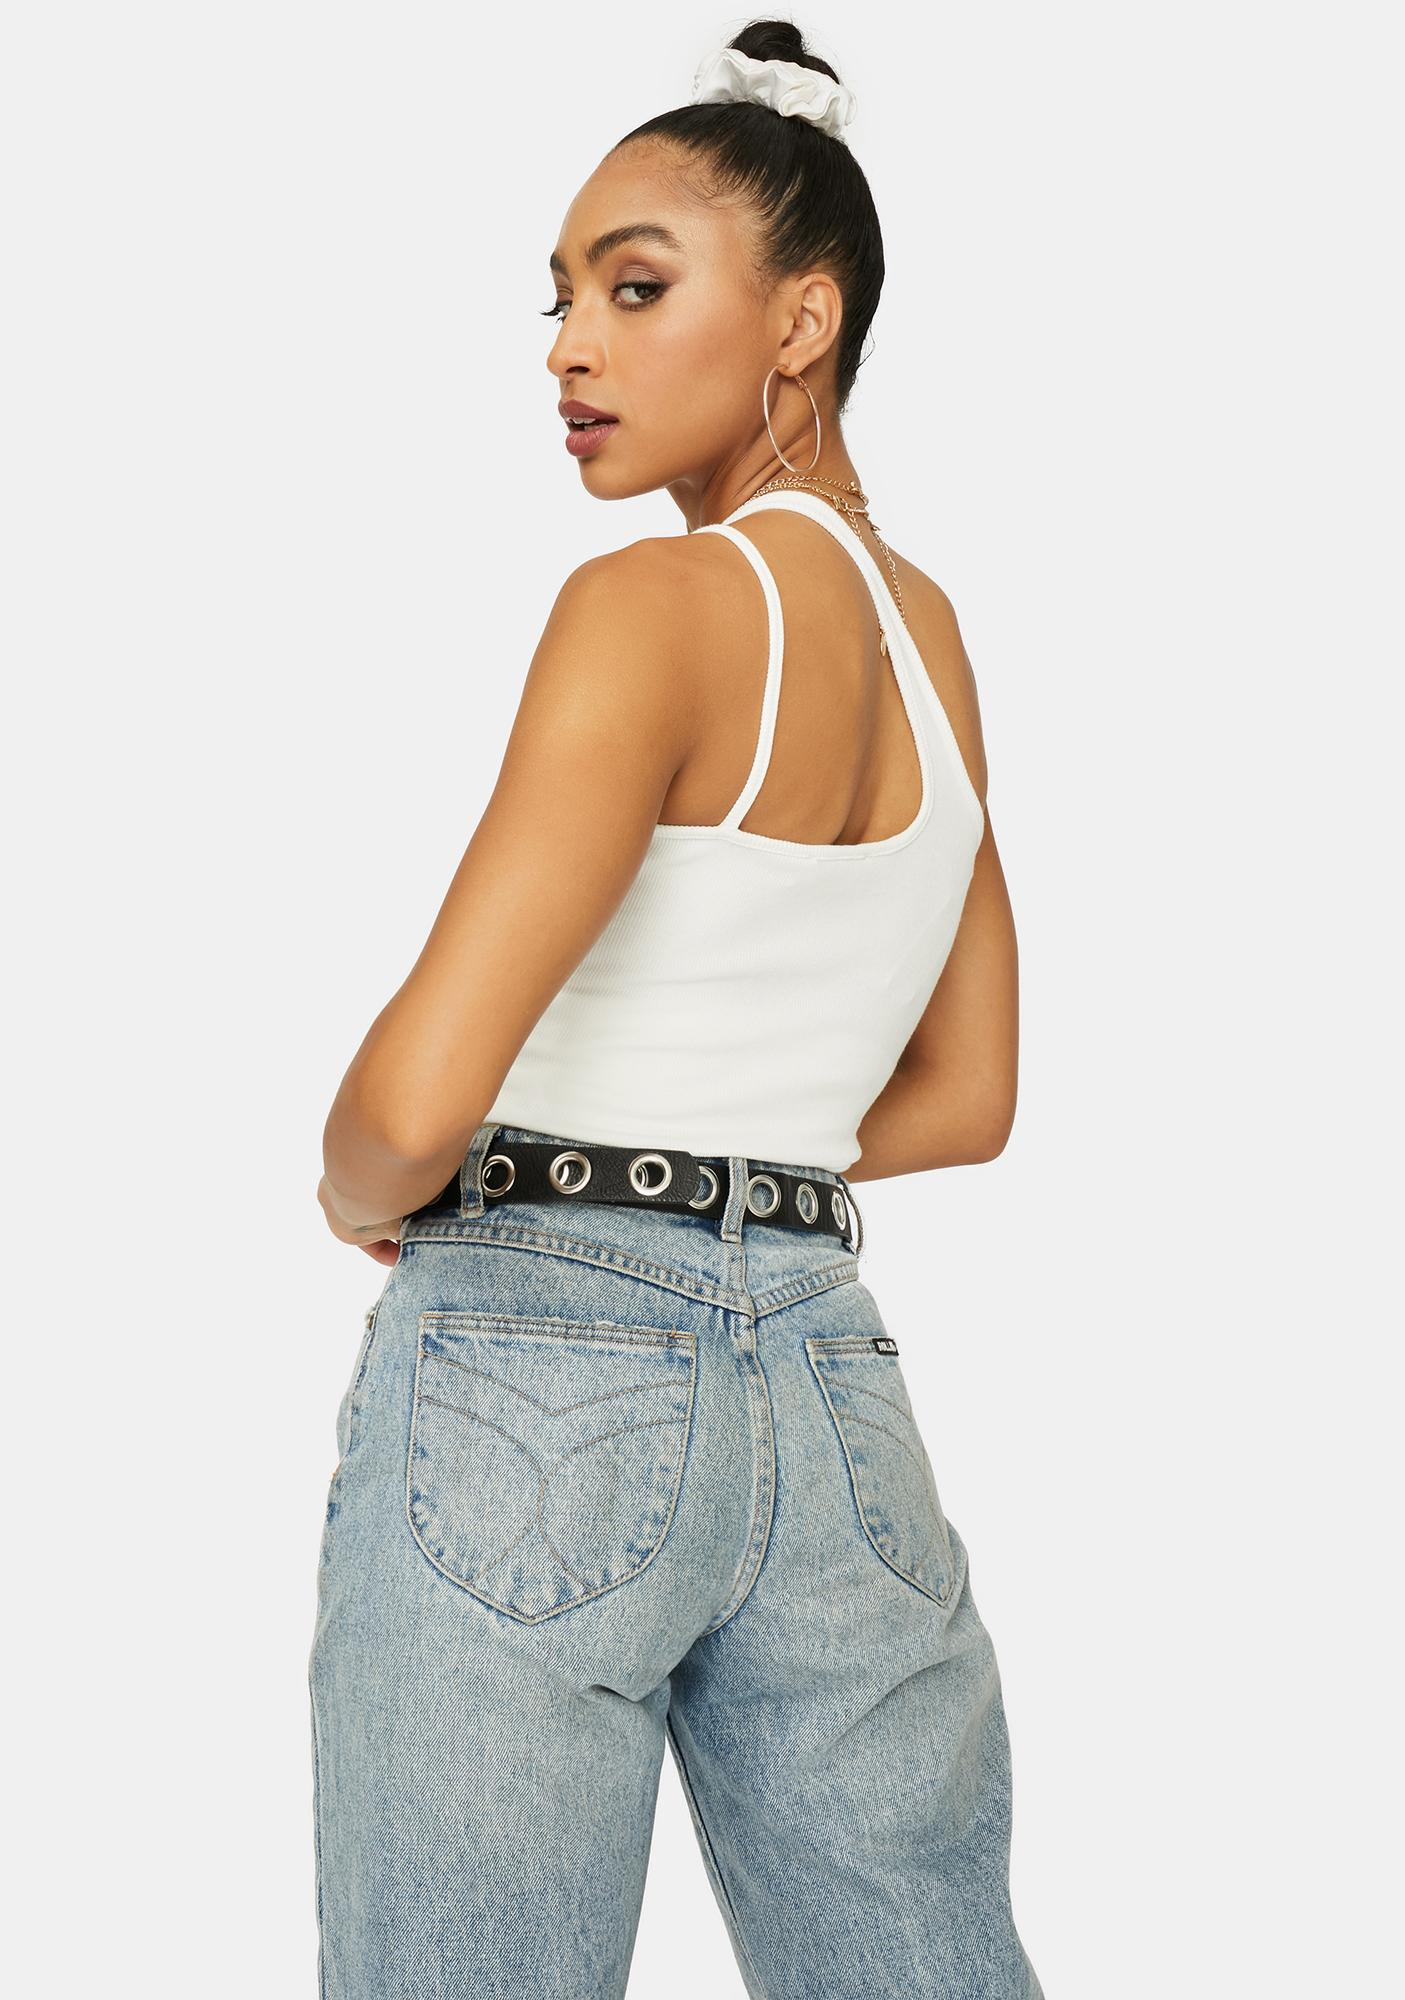 Chill Location Sent Asymmetrical Crop Top